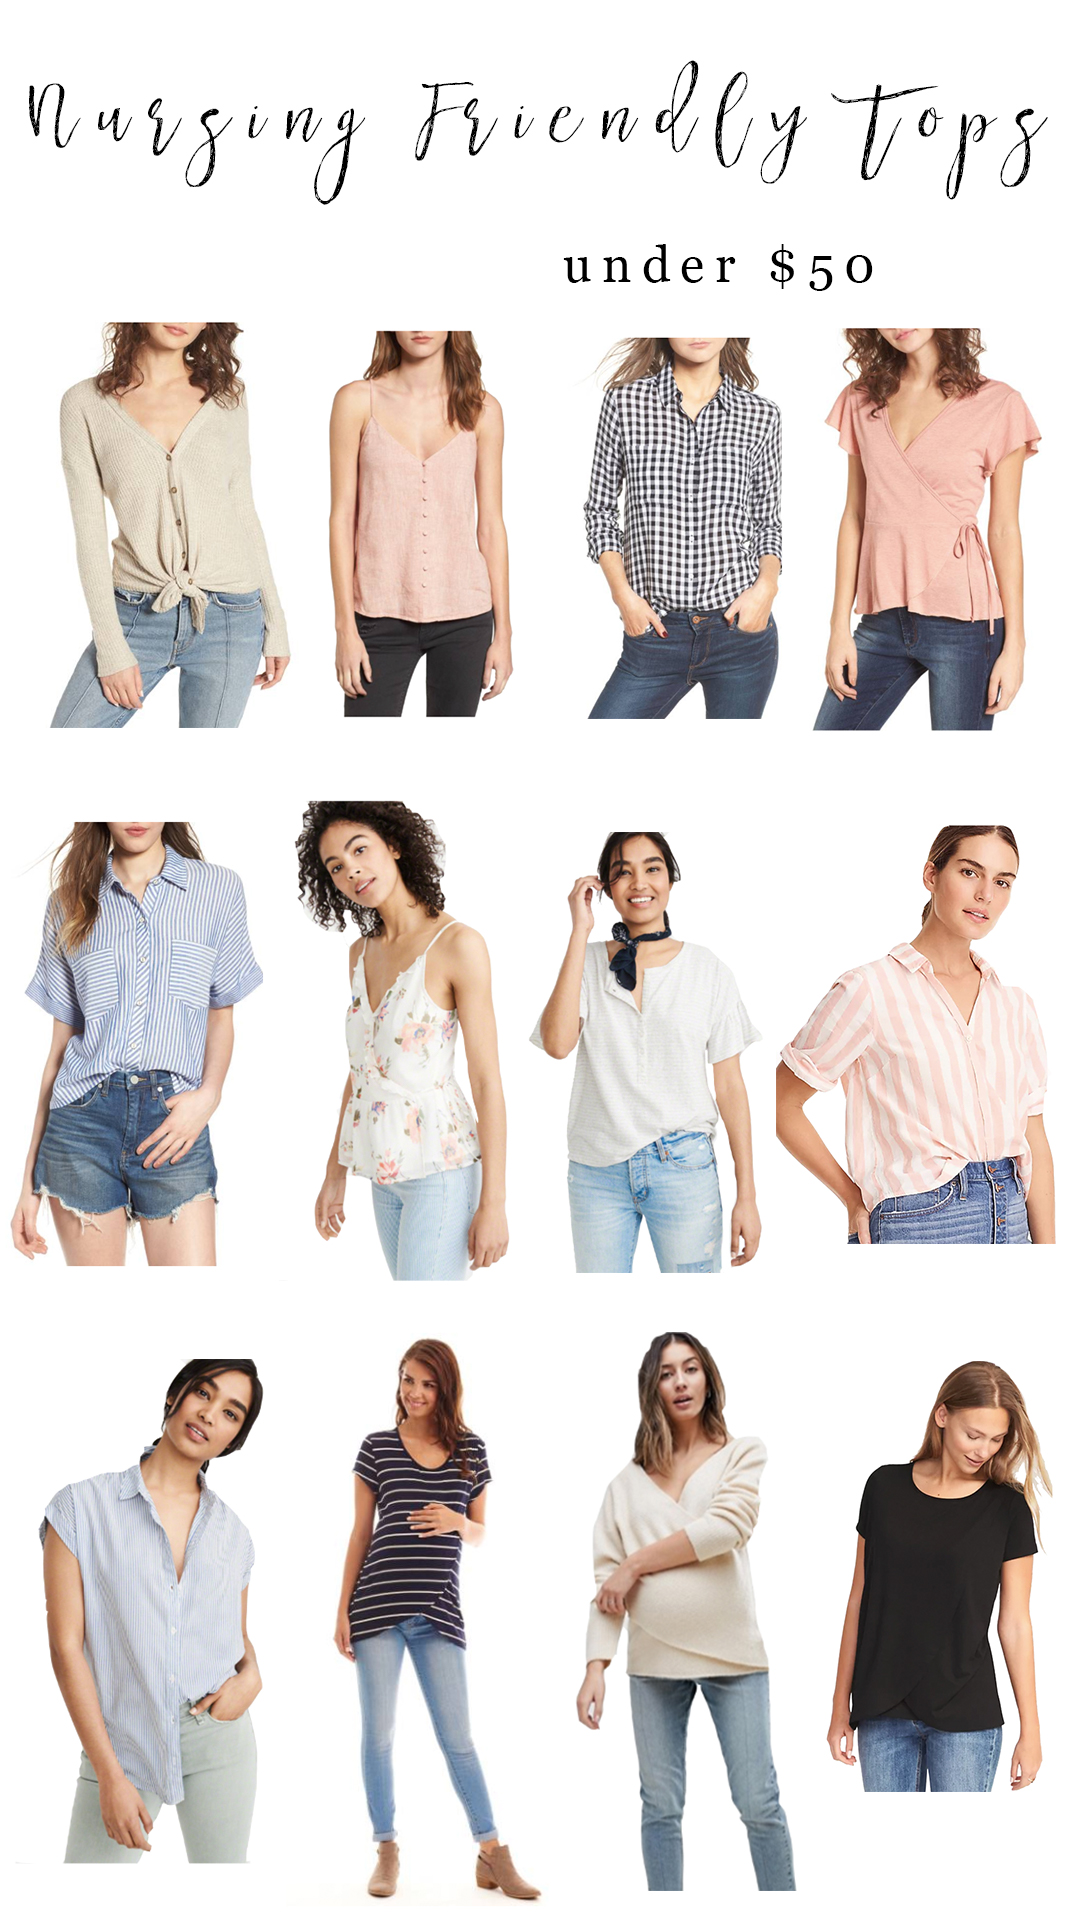 Life and style blogger Lauren McBride shares Nursing Friendly Tops Under $50 that make breastfeeding and pumping more accessible for moms.